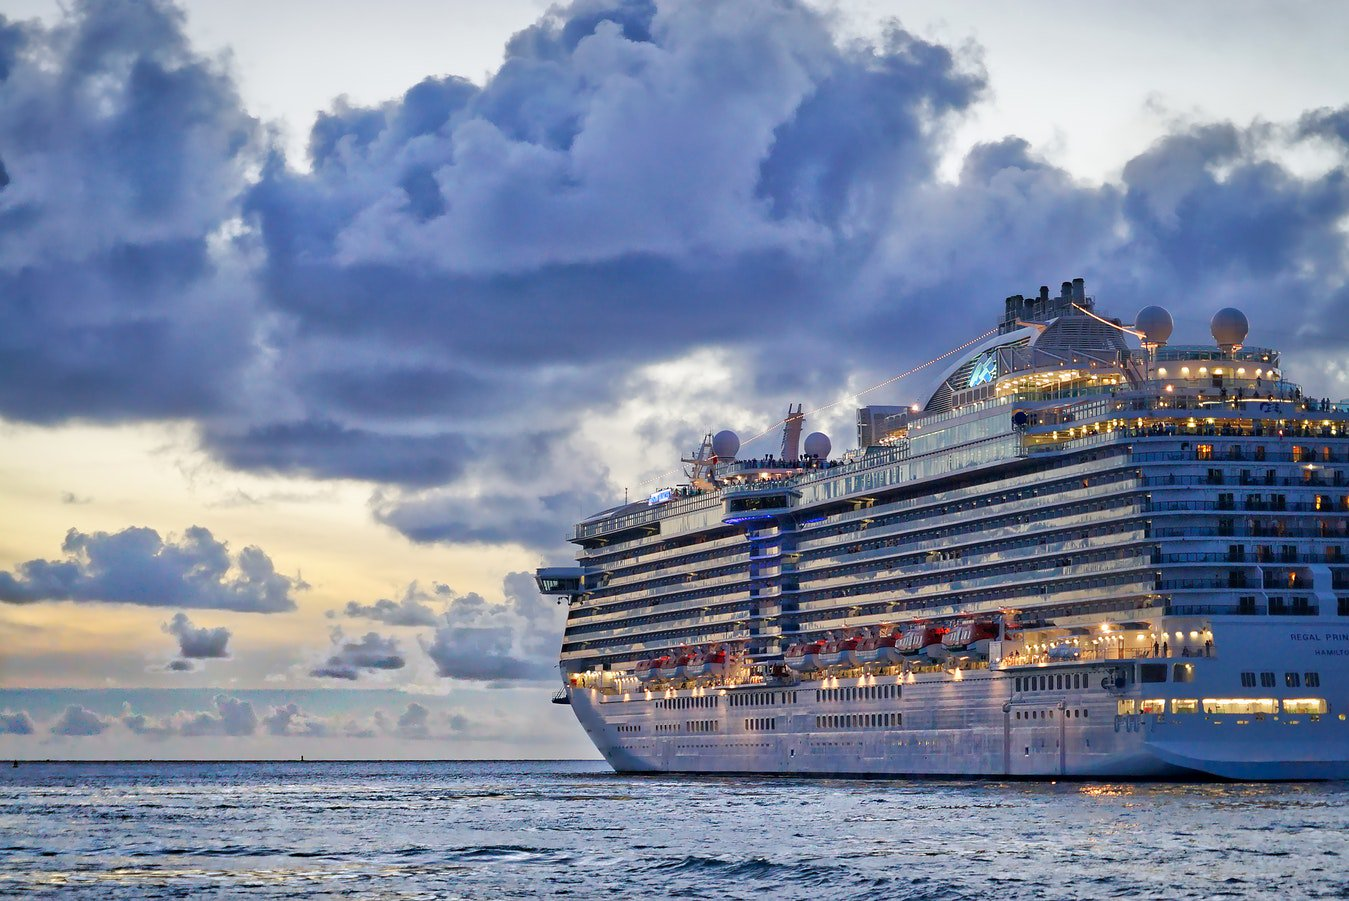 A cruise ship out at sunset on the water that accommodates seniors and older individuals looking for fun